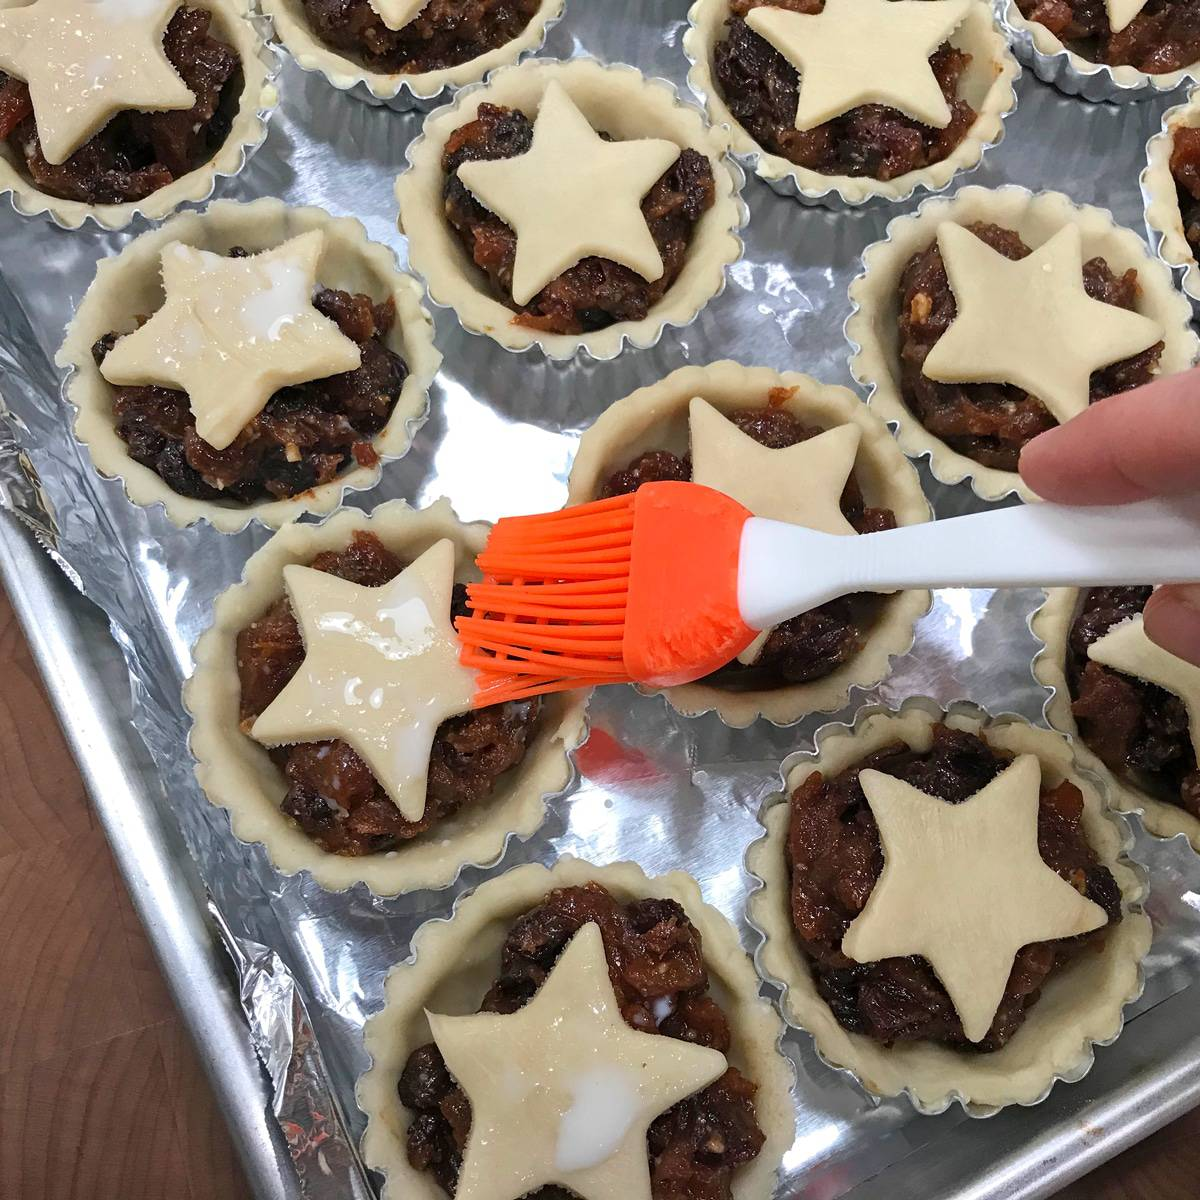 mincemeat pie recipe best traditional authentic British English from scratch